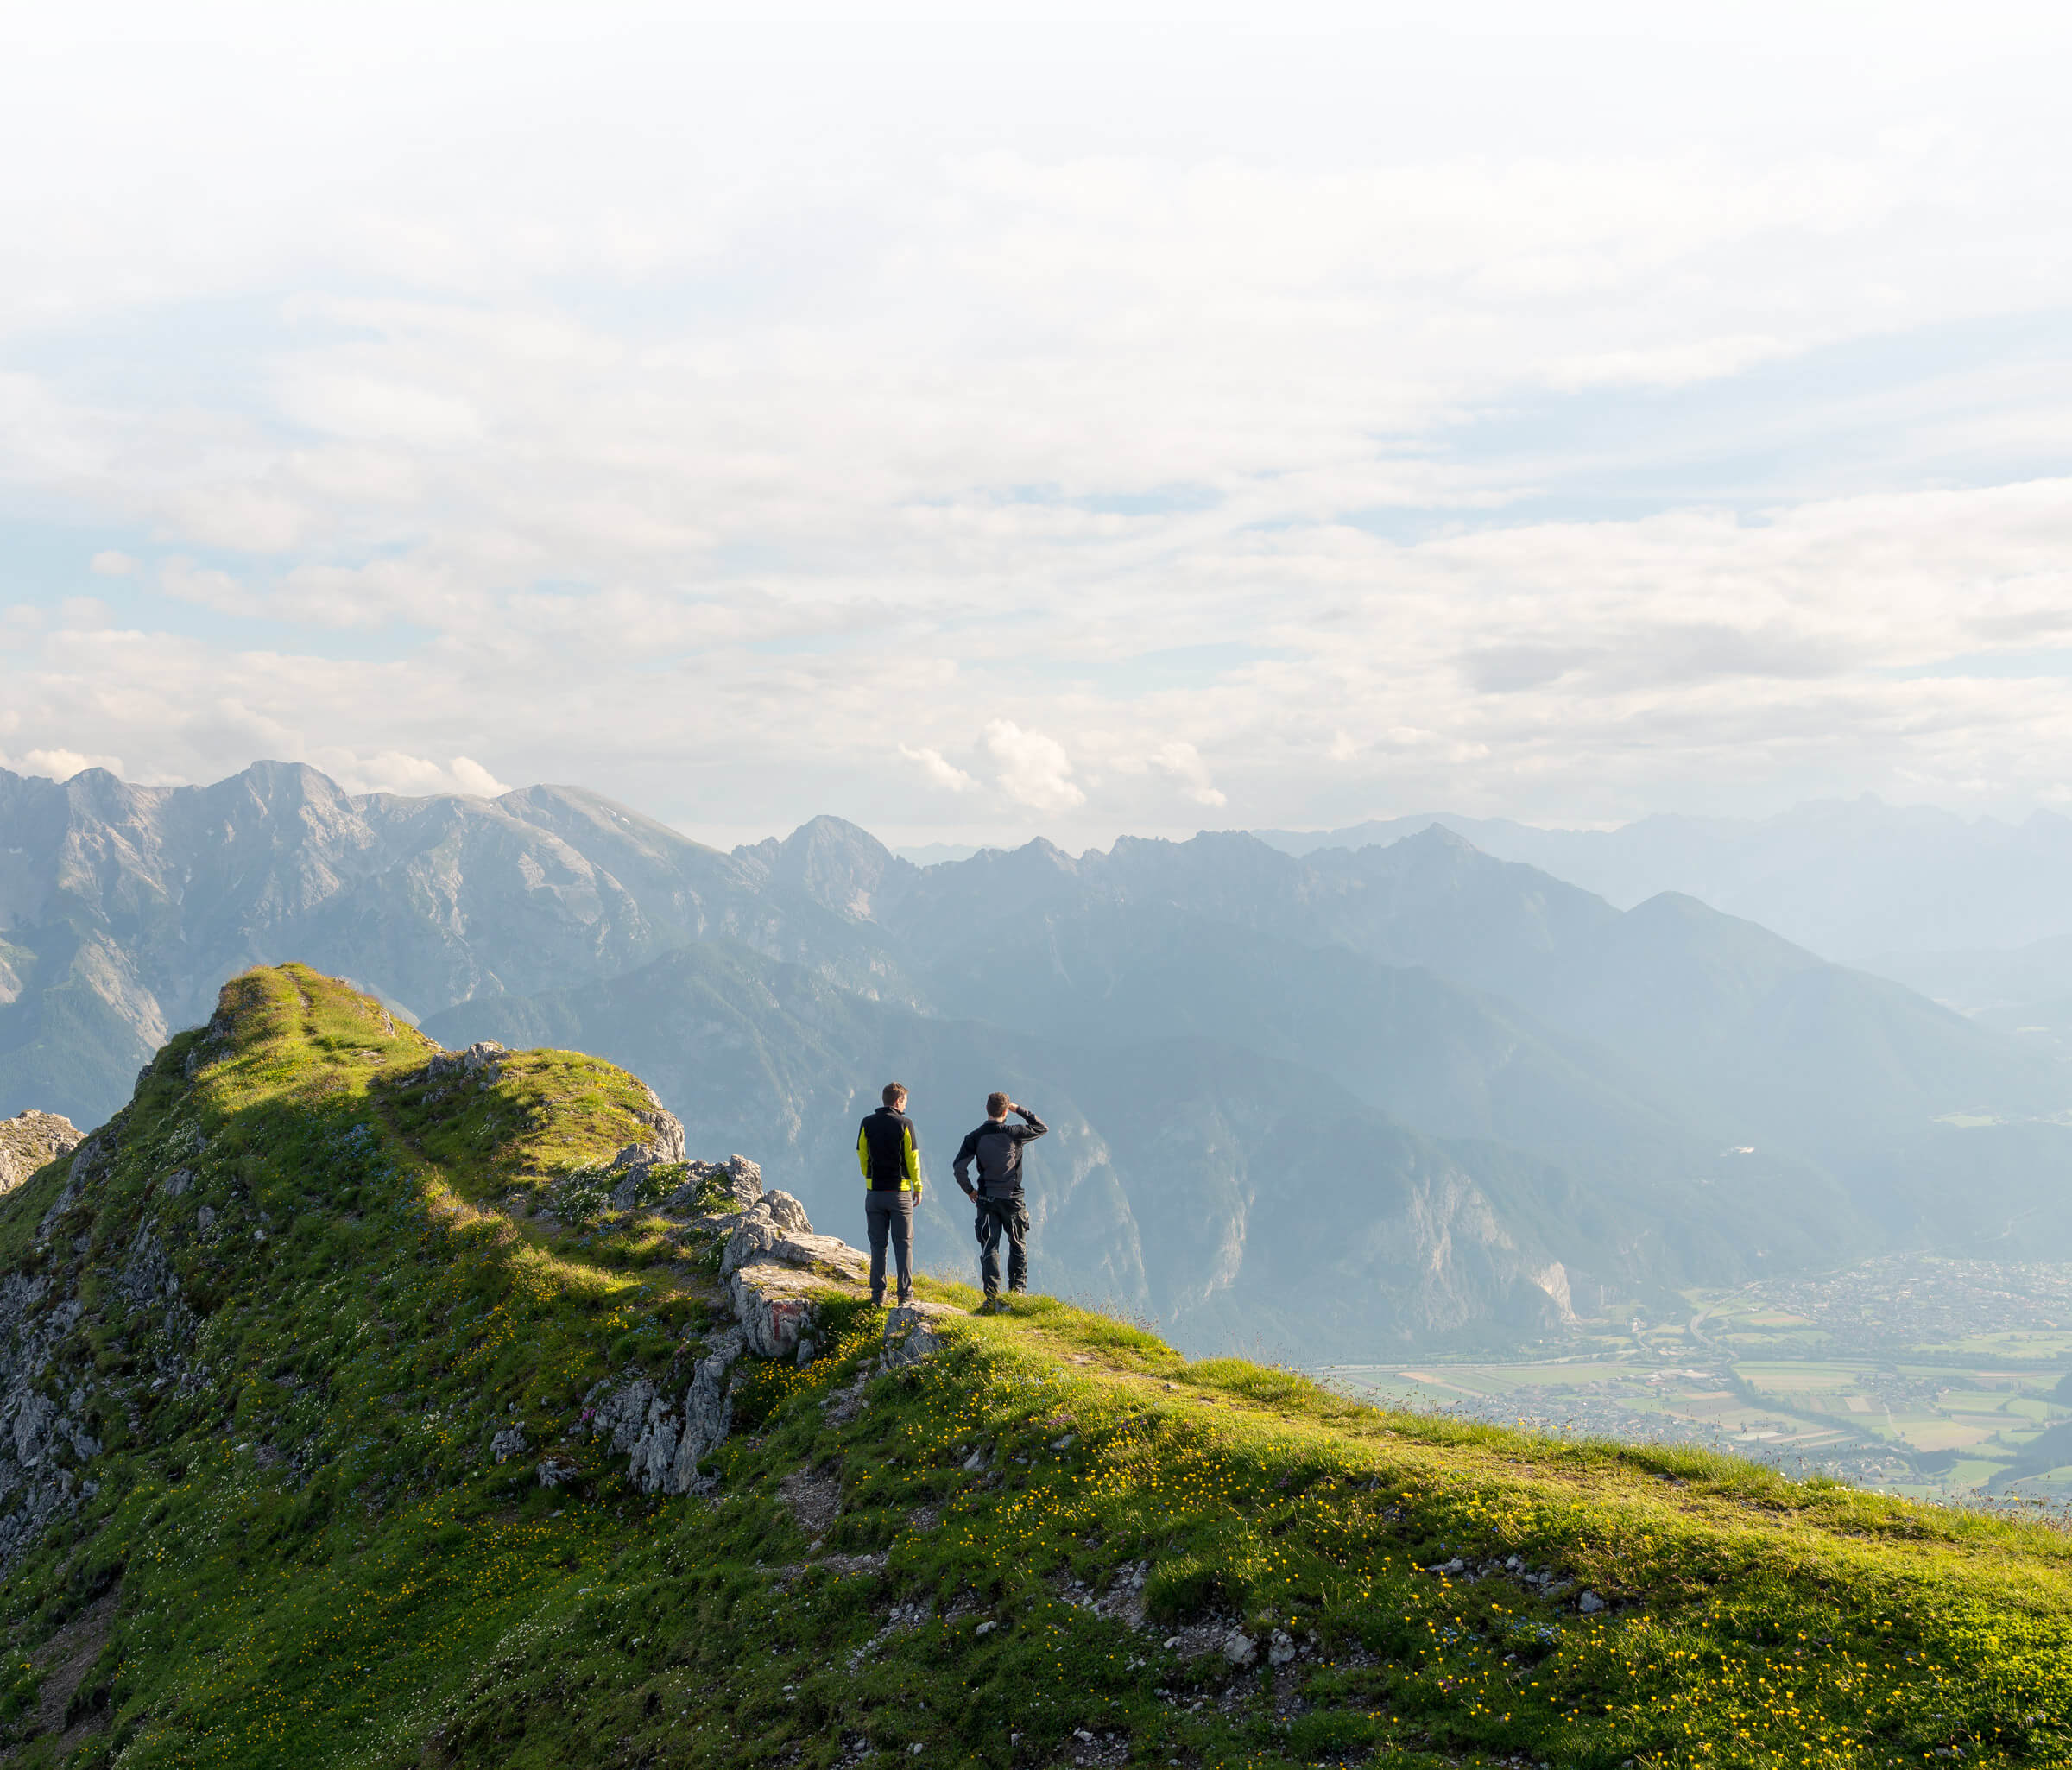 Summer scene. Two men on top of a mountain.